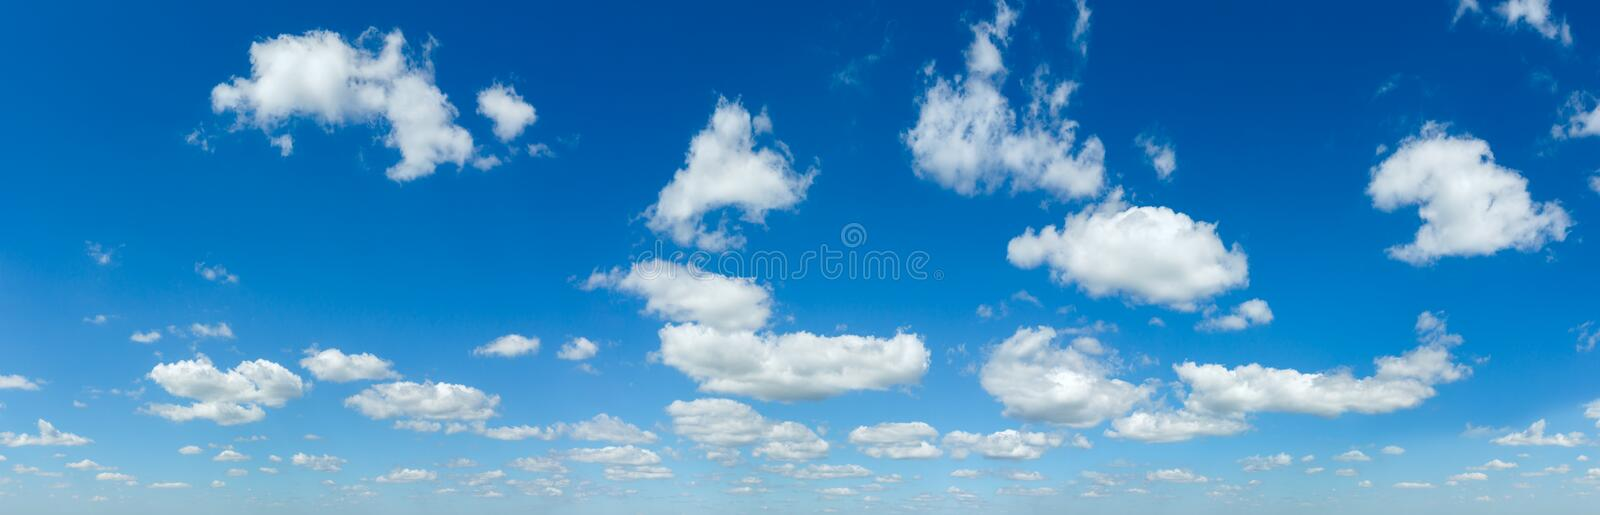 Blue sky panorama with white clouds royalty free stock image